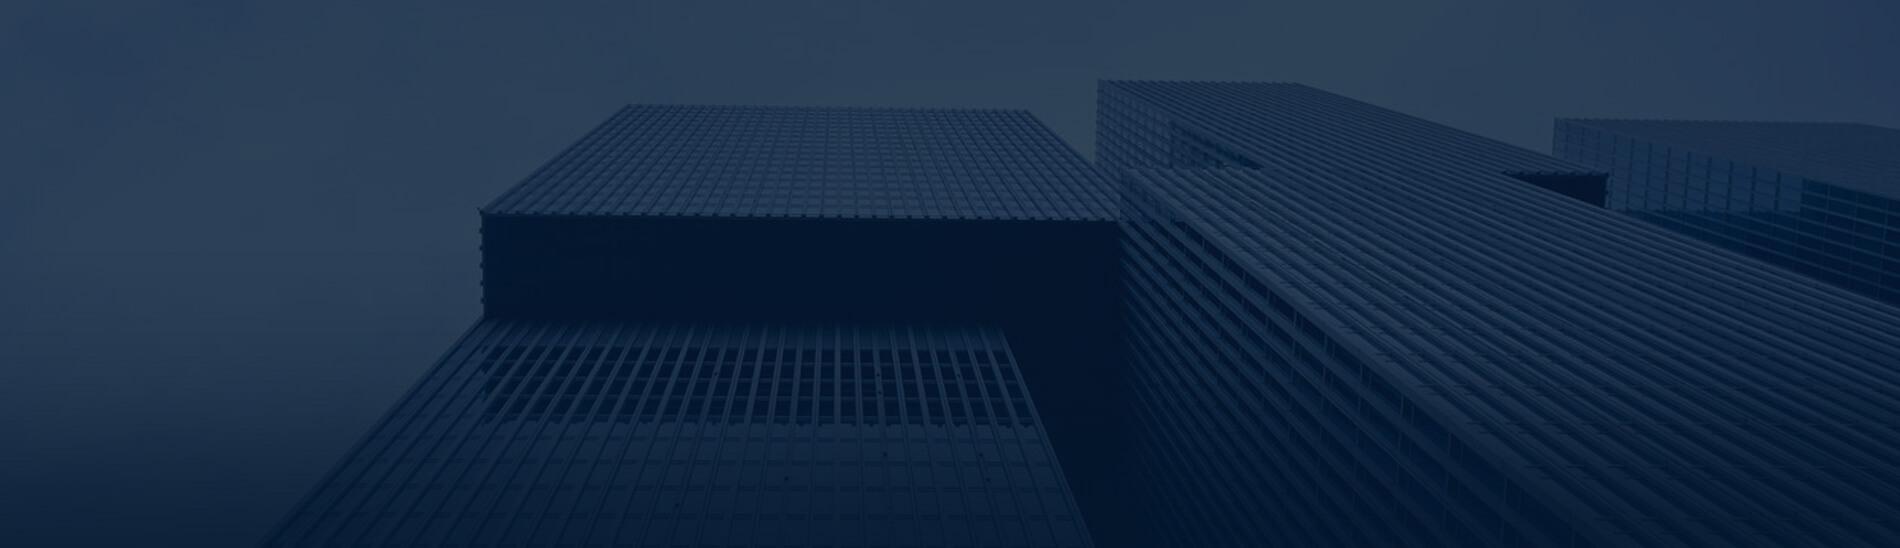 arthurmac second mortgage investments banner